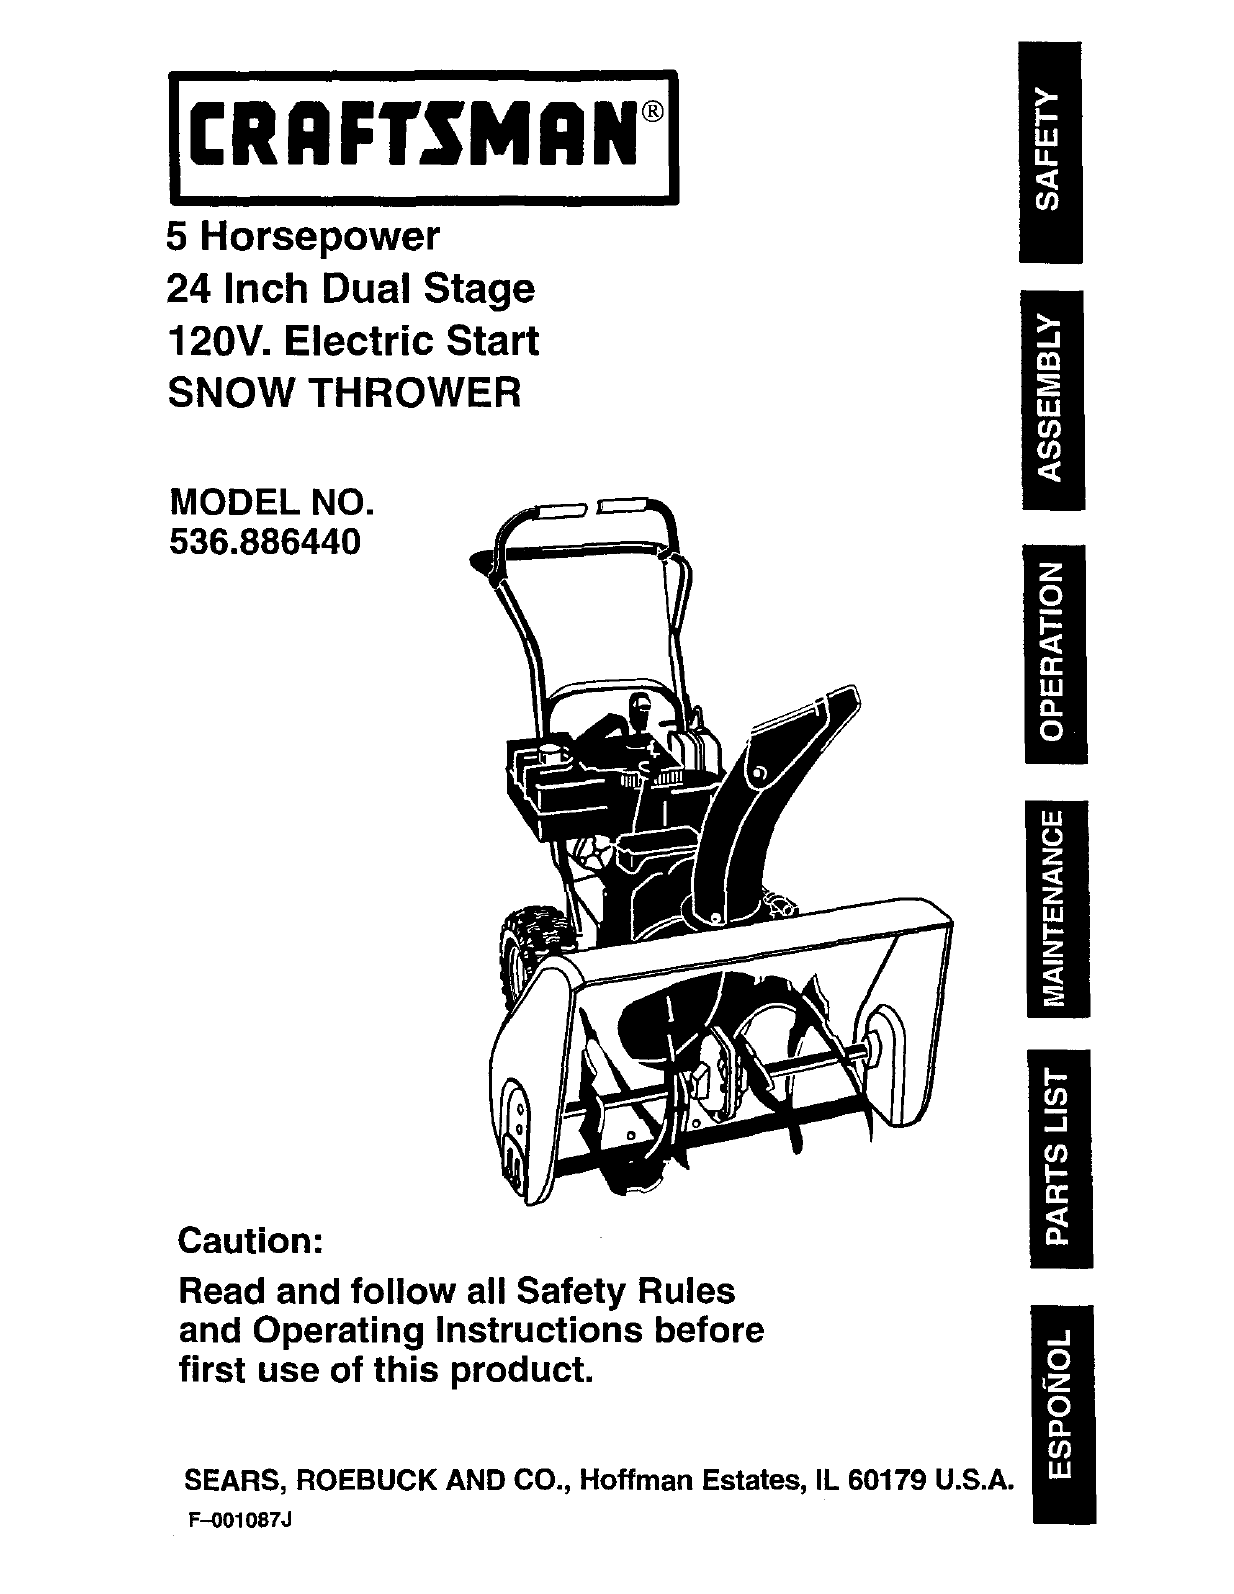 craftsman snow blower 536 88644 user guide manualsonline com rh lawnandgarden manualsonline com Craftsman Snowblower with Tracks Craftsman 536 Snowblower Parts